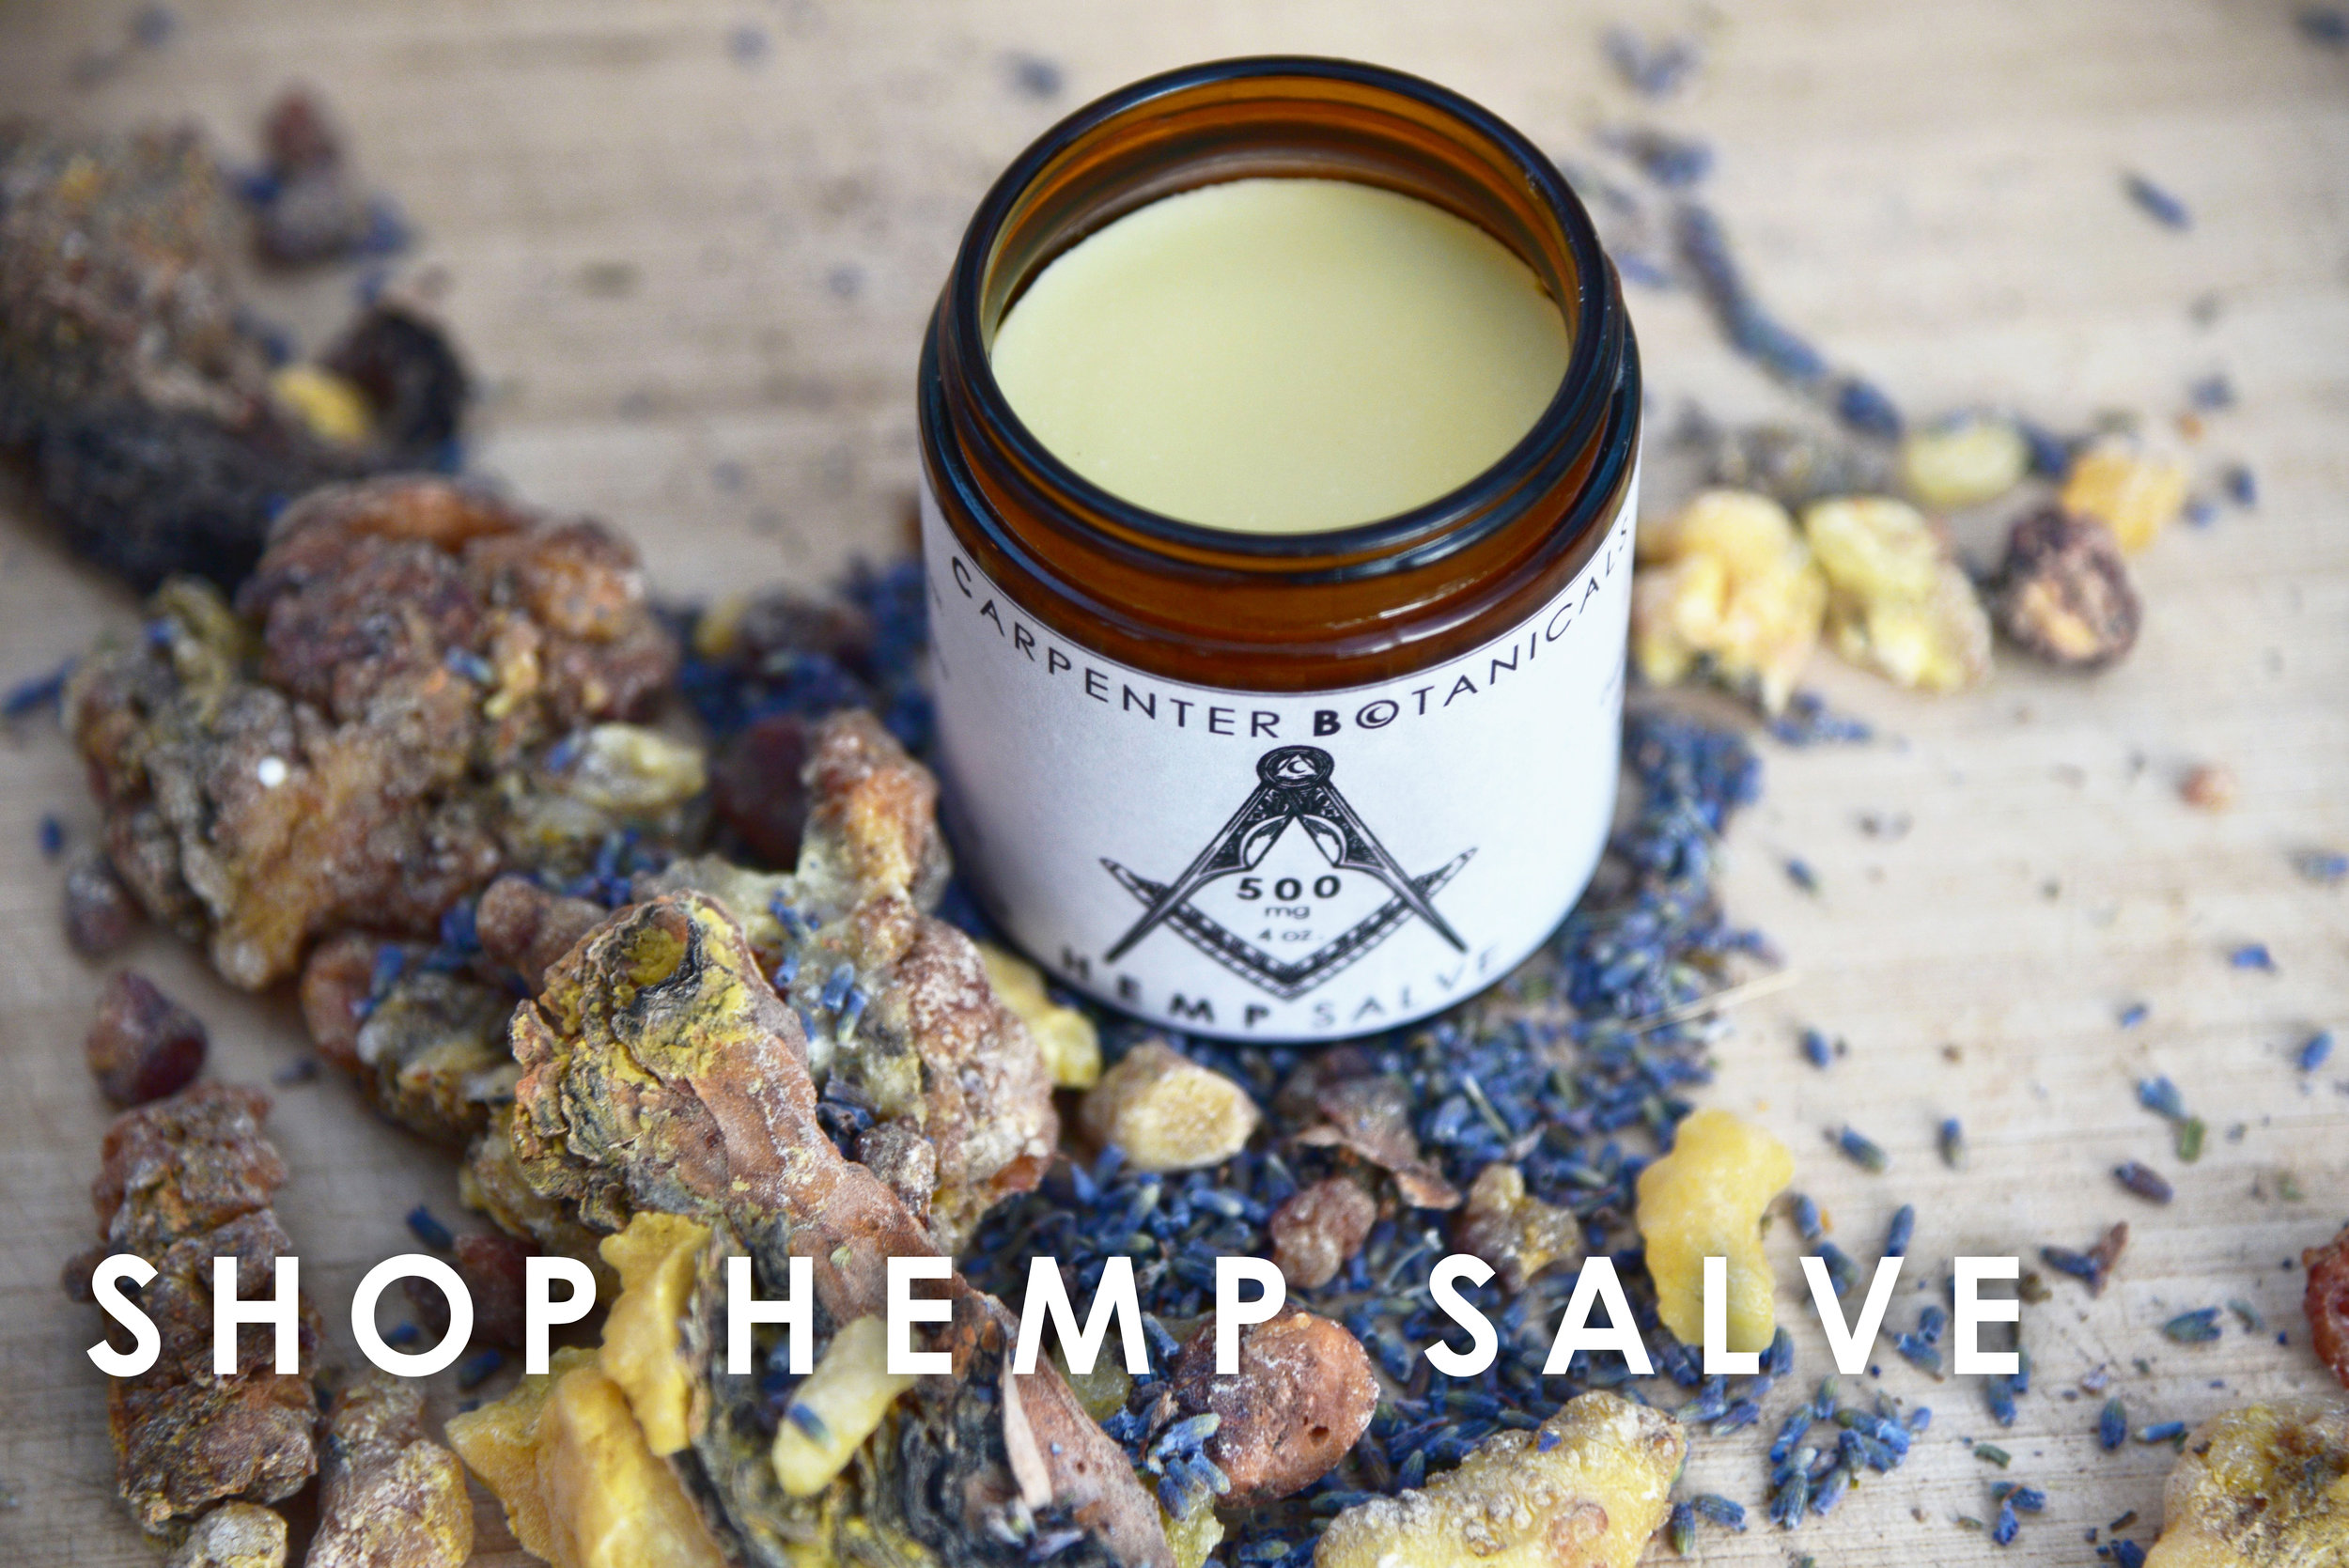 Carpenter Botanicals Hemp Salve